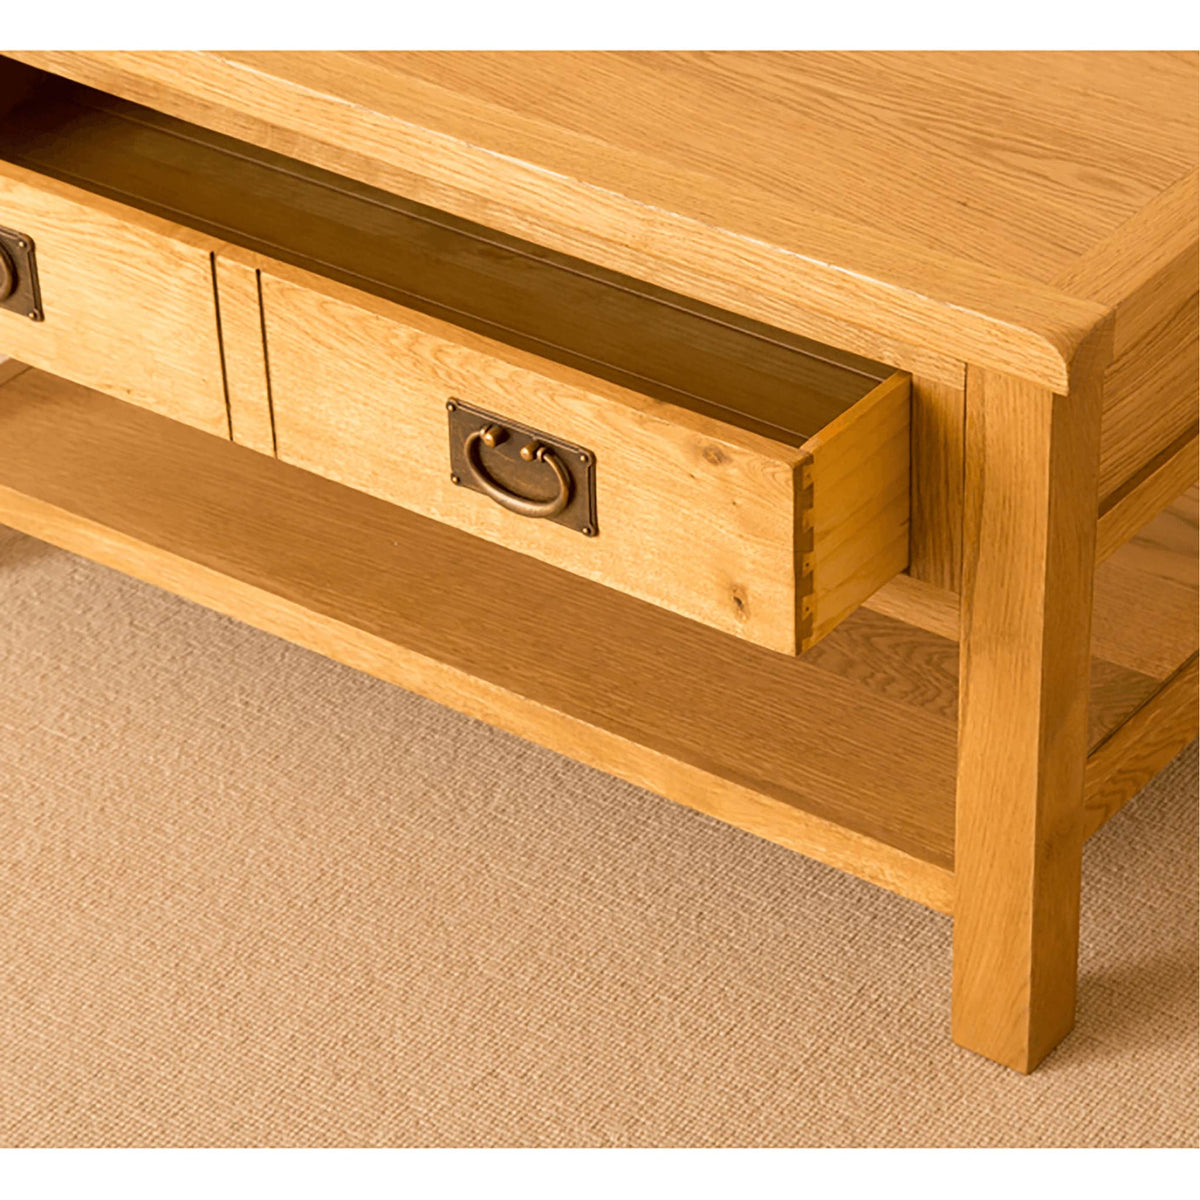 Lanner Oak Coffee Table with drawers open